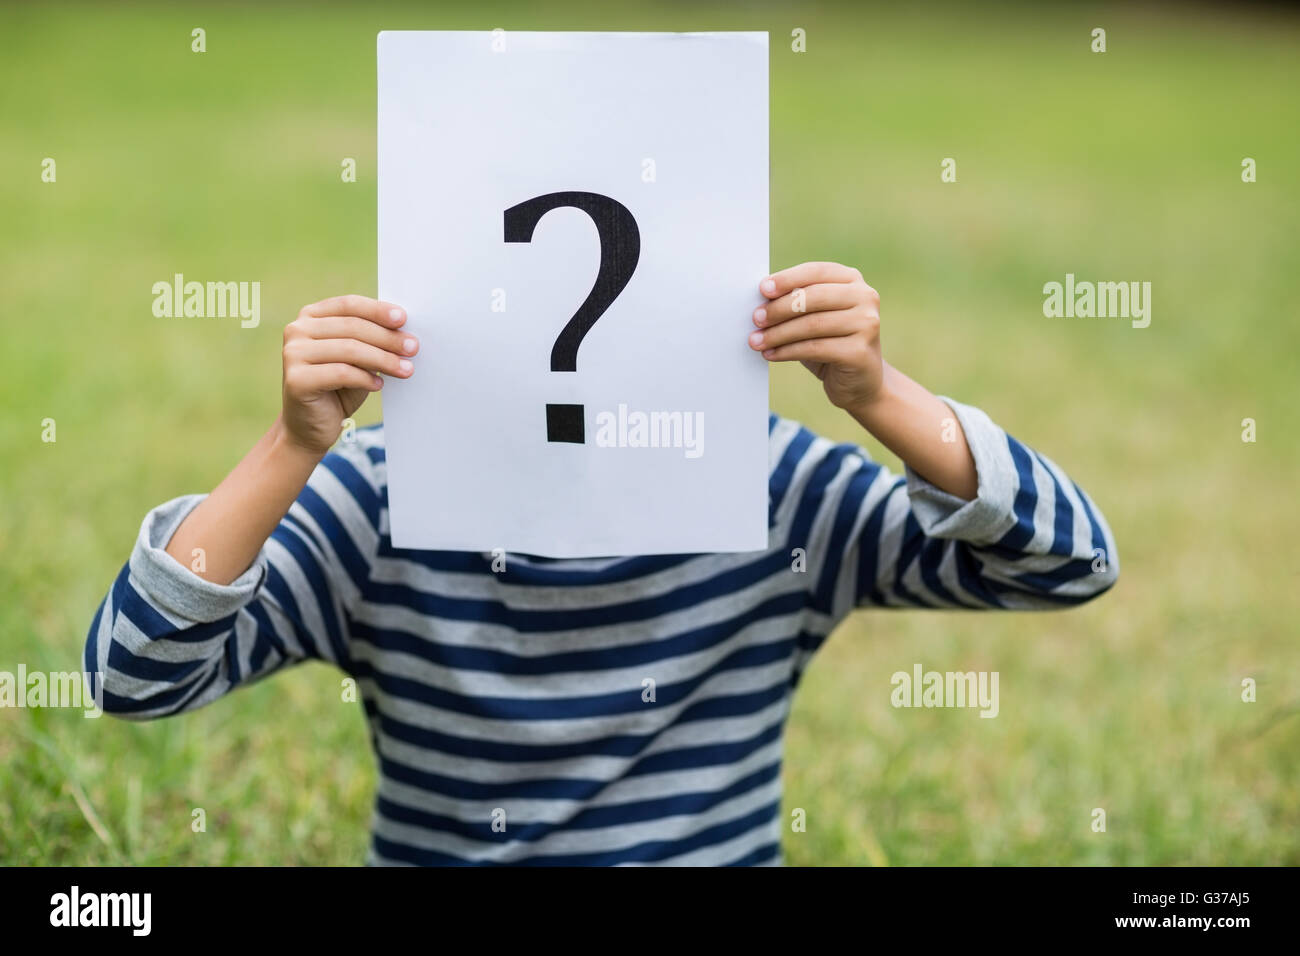 Boy covering his face with a placard that shows question mark sign - Stock Image